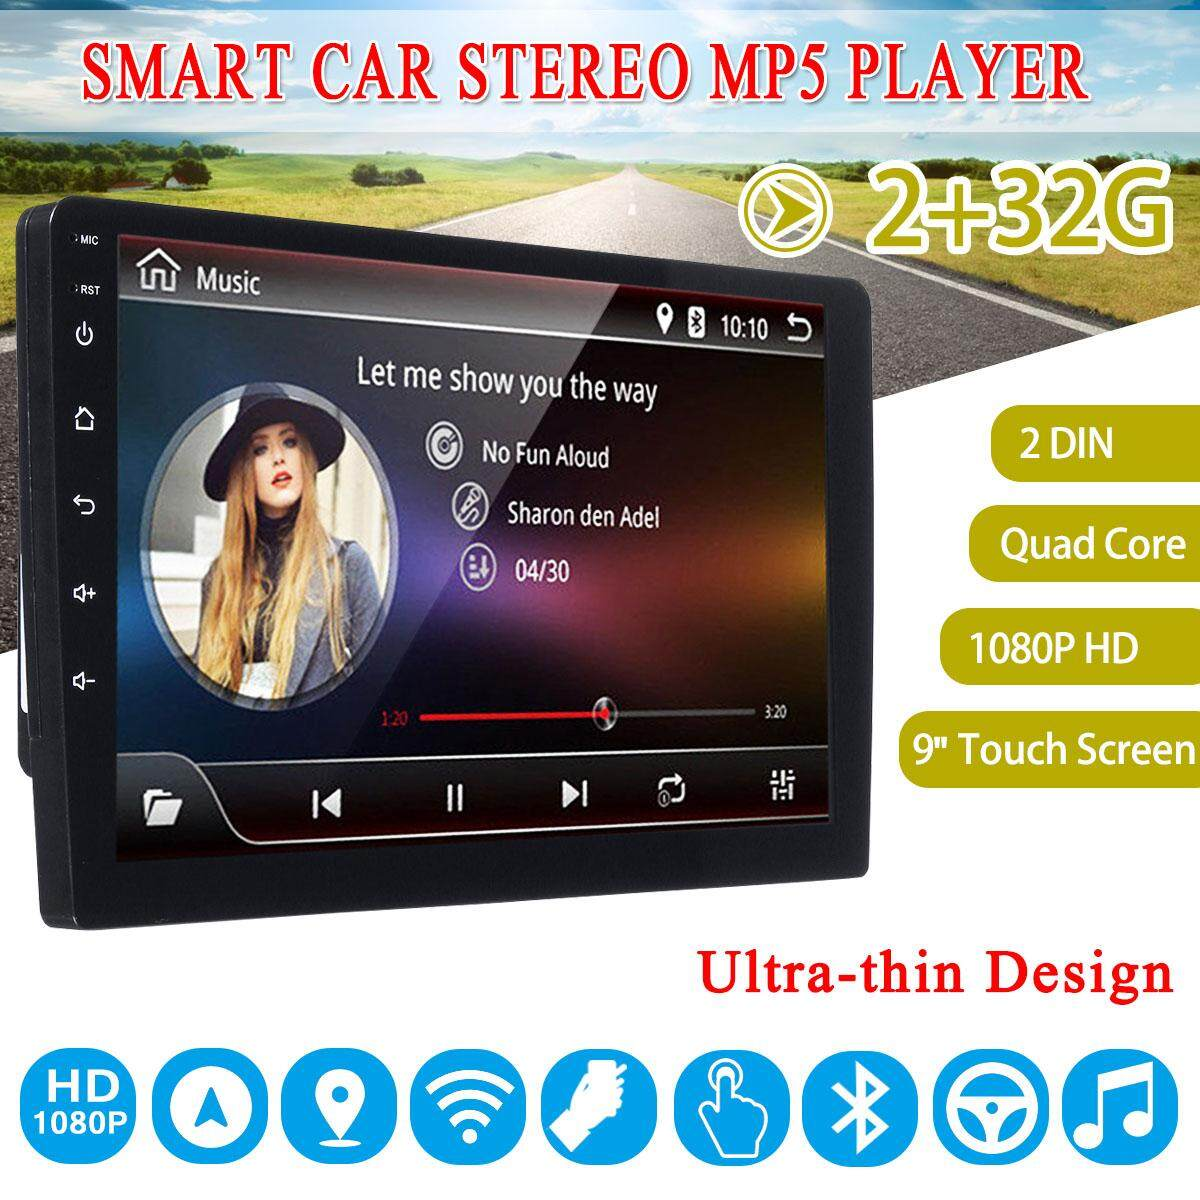 【free Shipping + Super Deal + Limited Offer】9 2g+32g 2din Android 7.1 Wifi Car Radio Gps Navigation Audio Stereo Car Mp5 Player By Haldis.